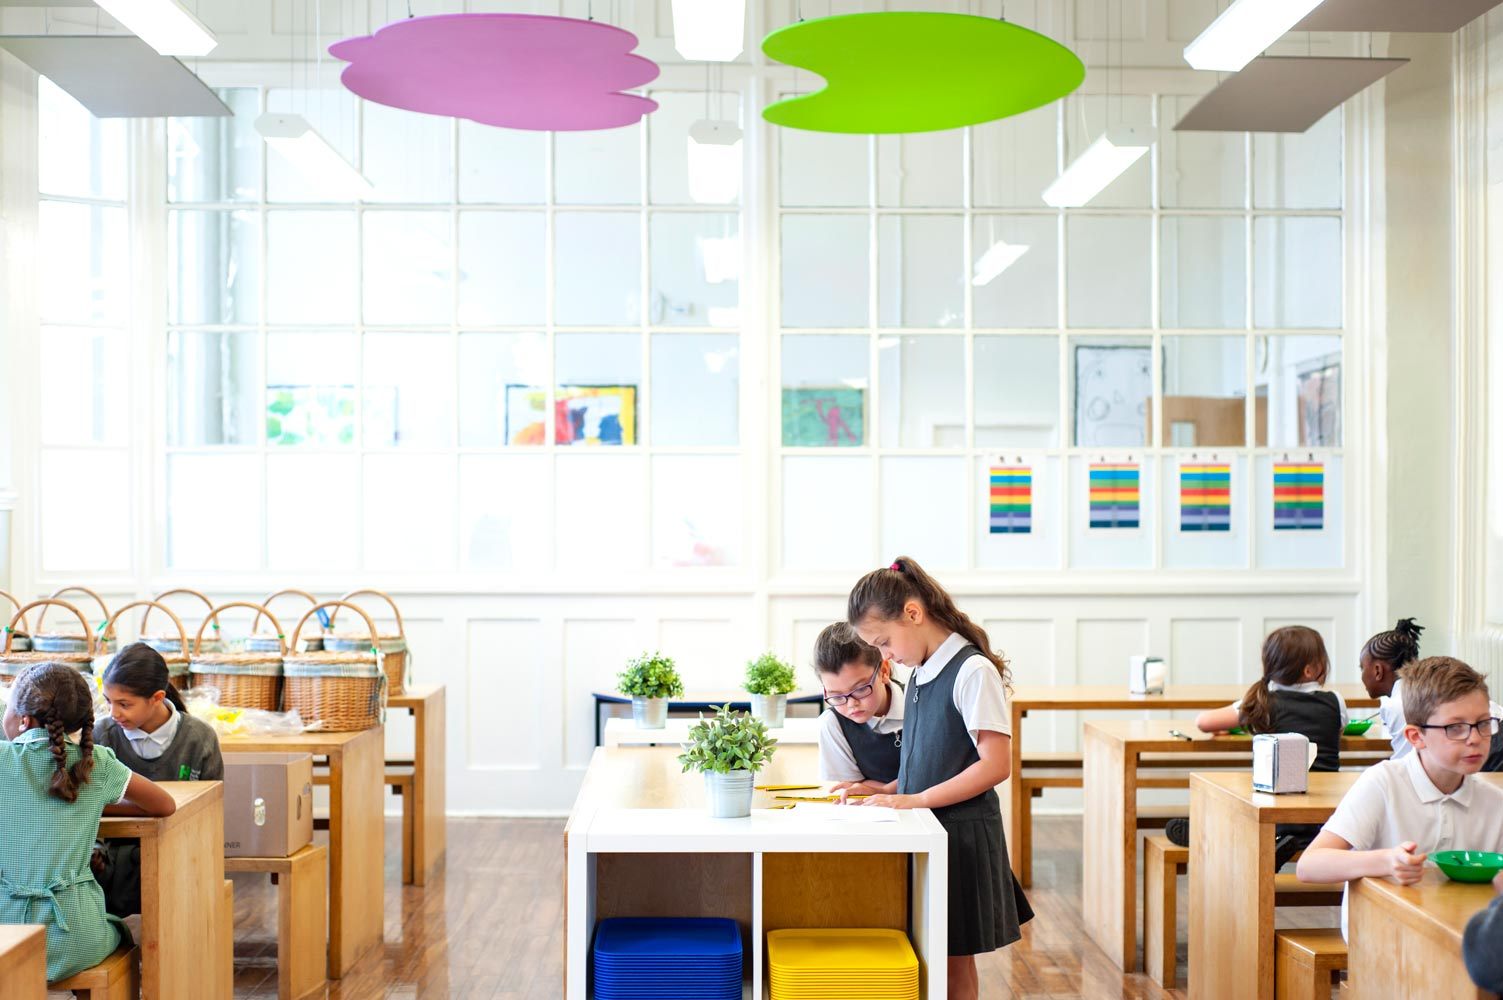 Primary school dinner hall photograph for website and prospectus